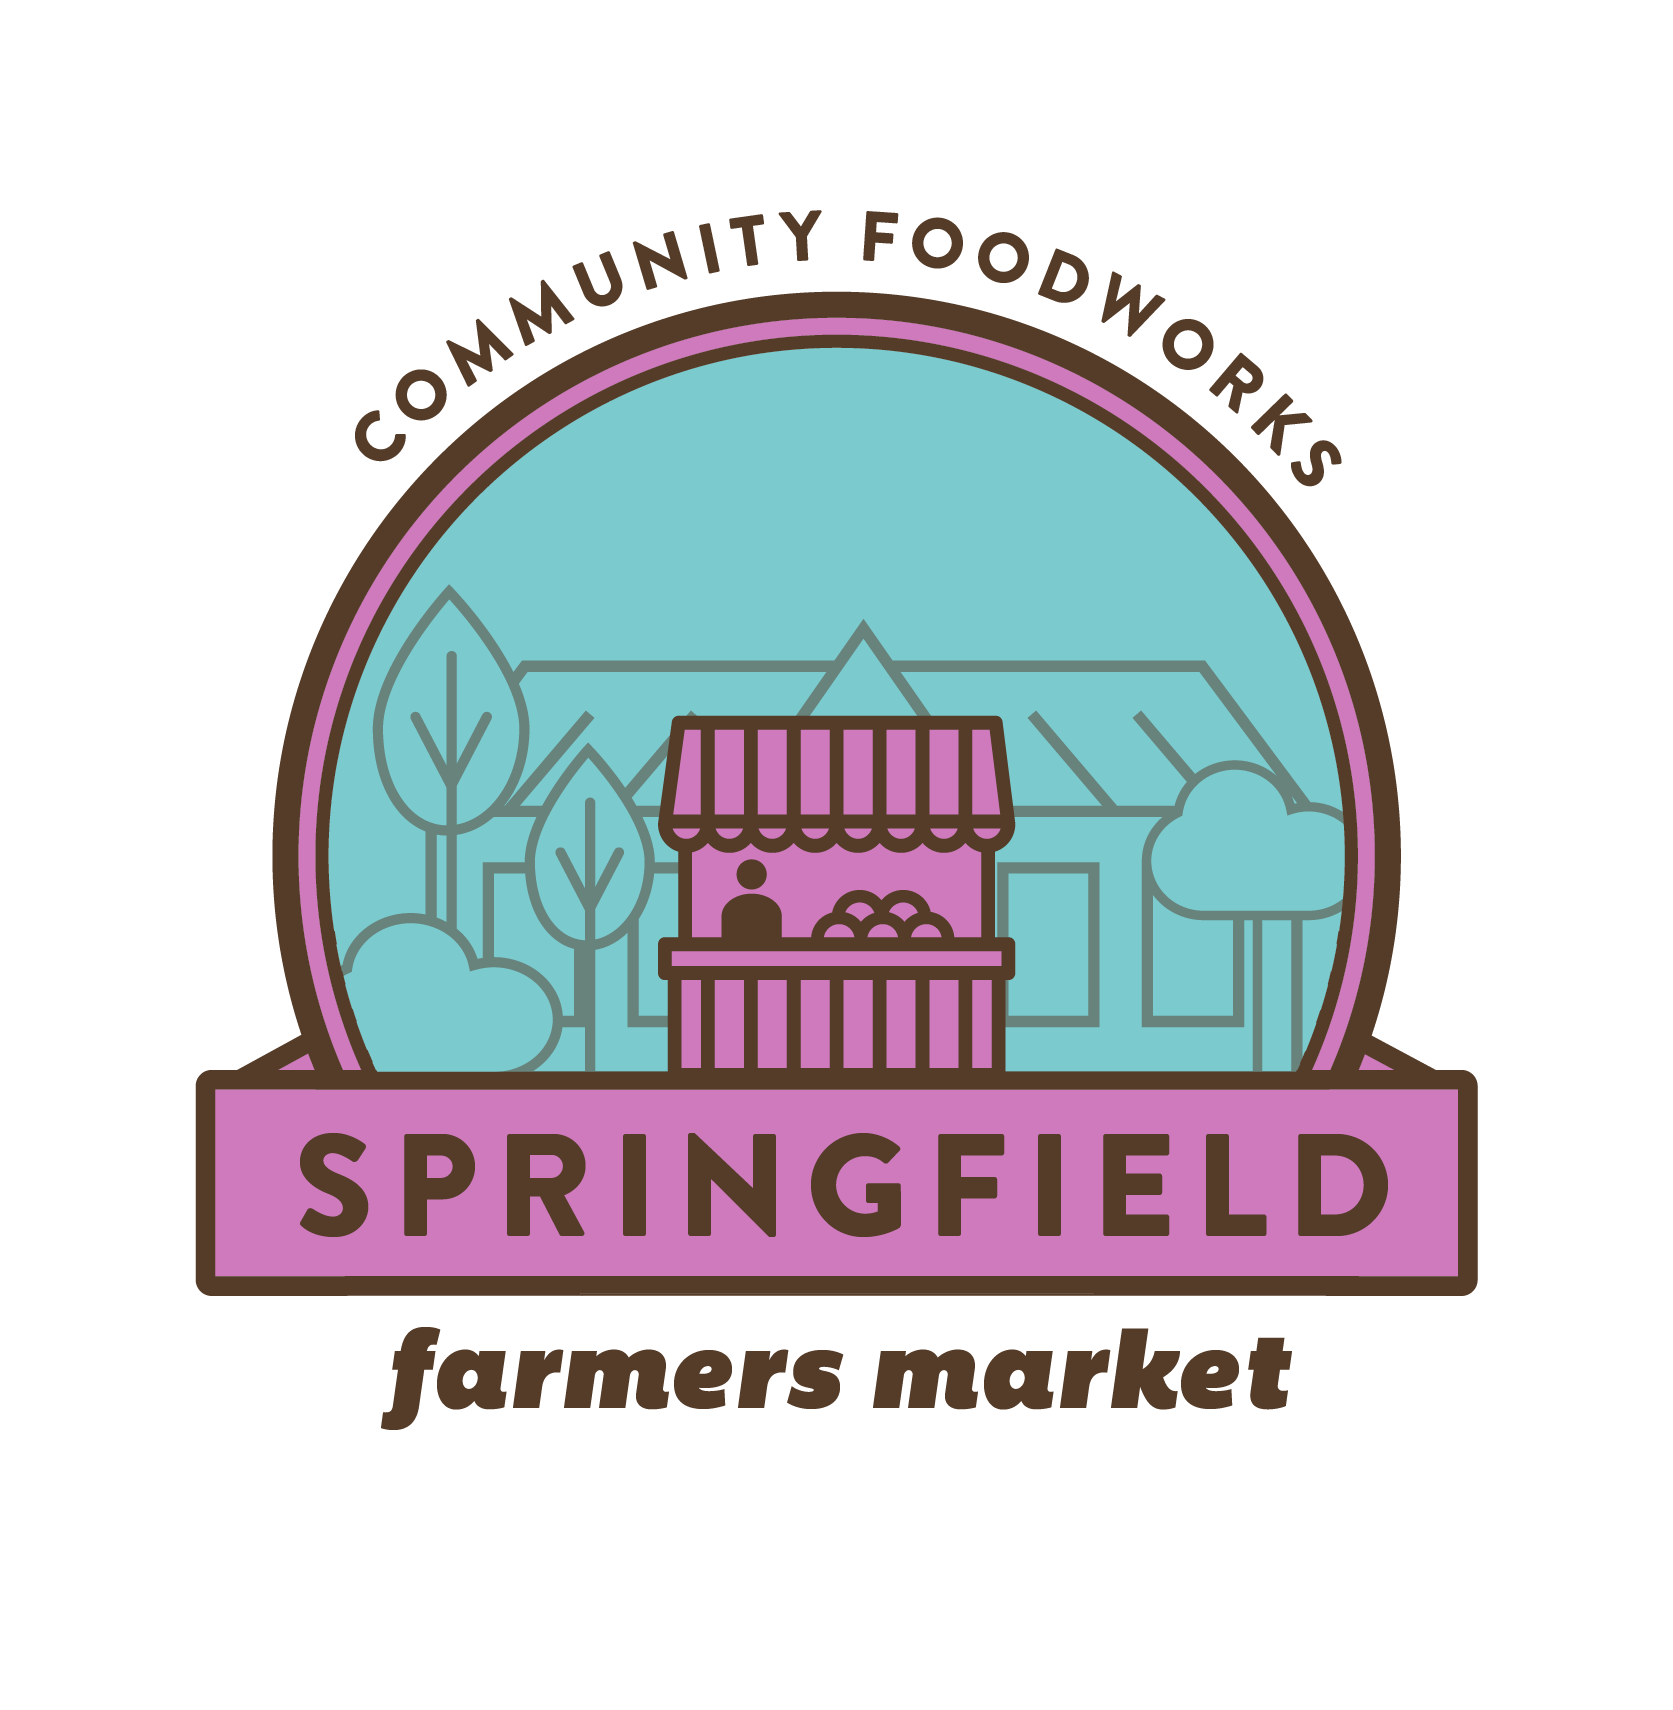 CFW_Farmers-Markets_Springfield.png